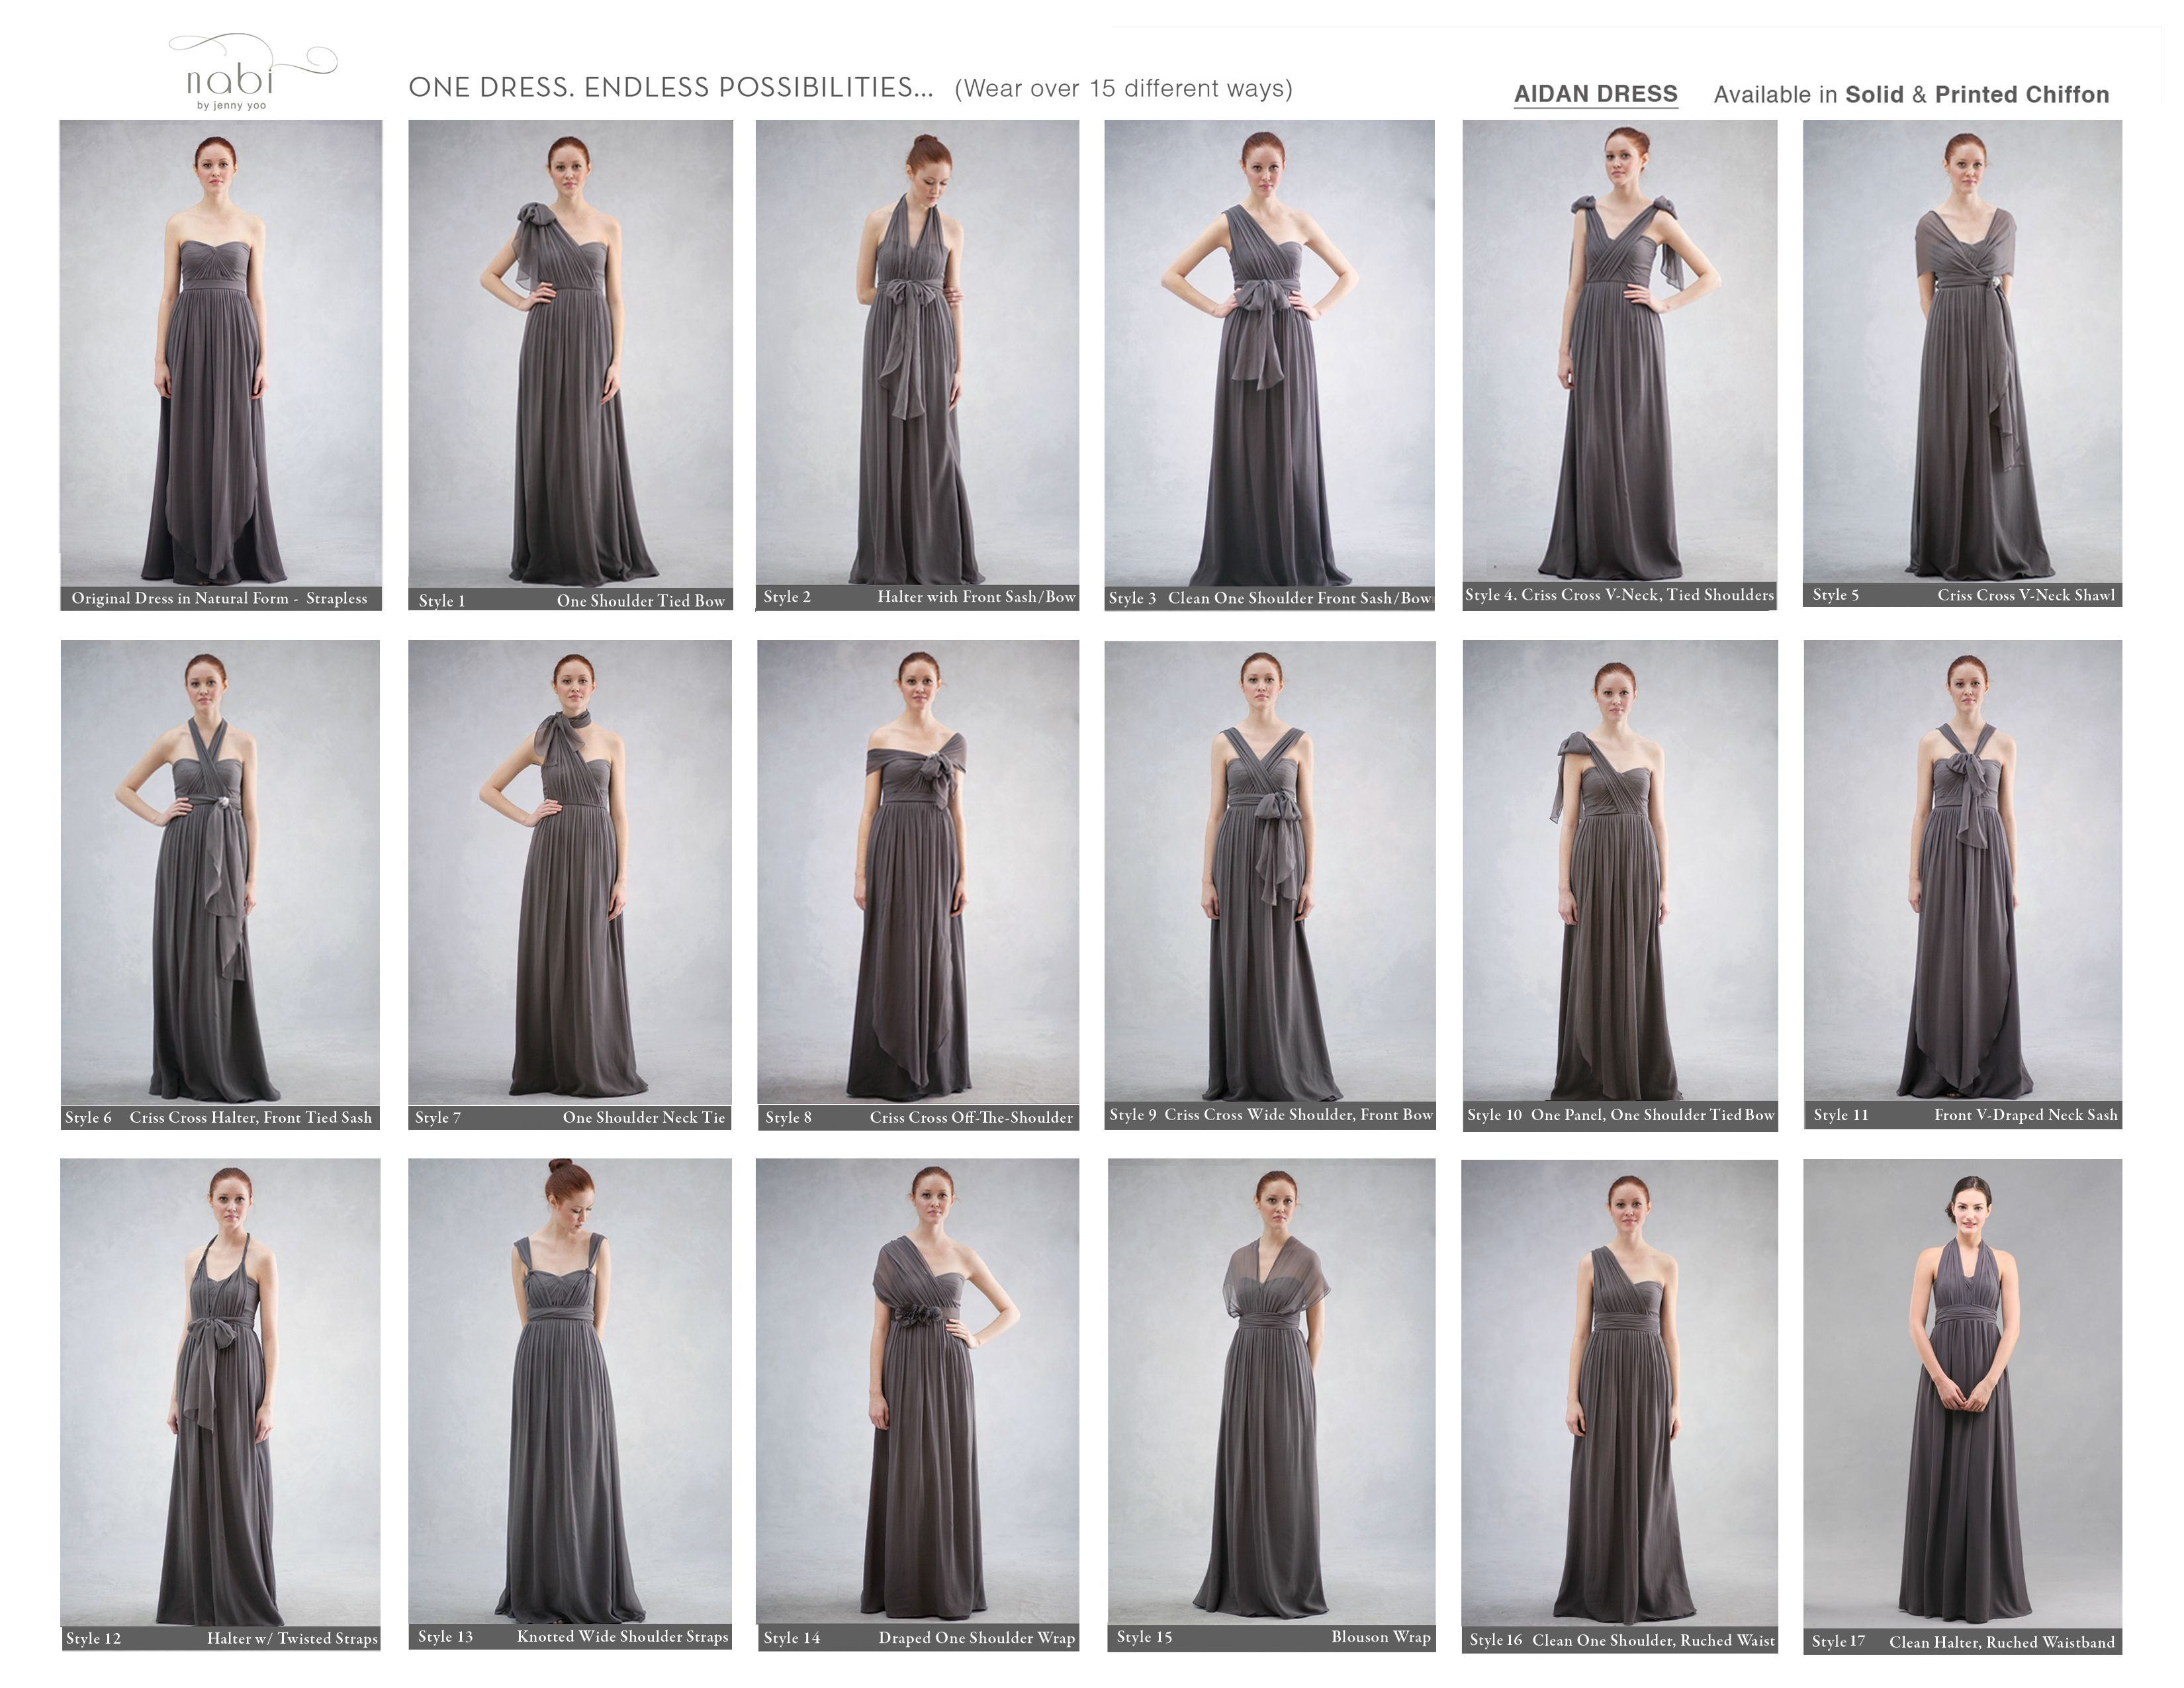 Bridesmaid dresses in different styles images braidsmaid dress convertible aidan dresses by jenny yoo httpjennyyoo convertible aidan dresses by jenny yoo httpjennyyoo ombrellifo images ombrellifo Gallery